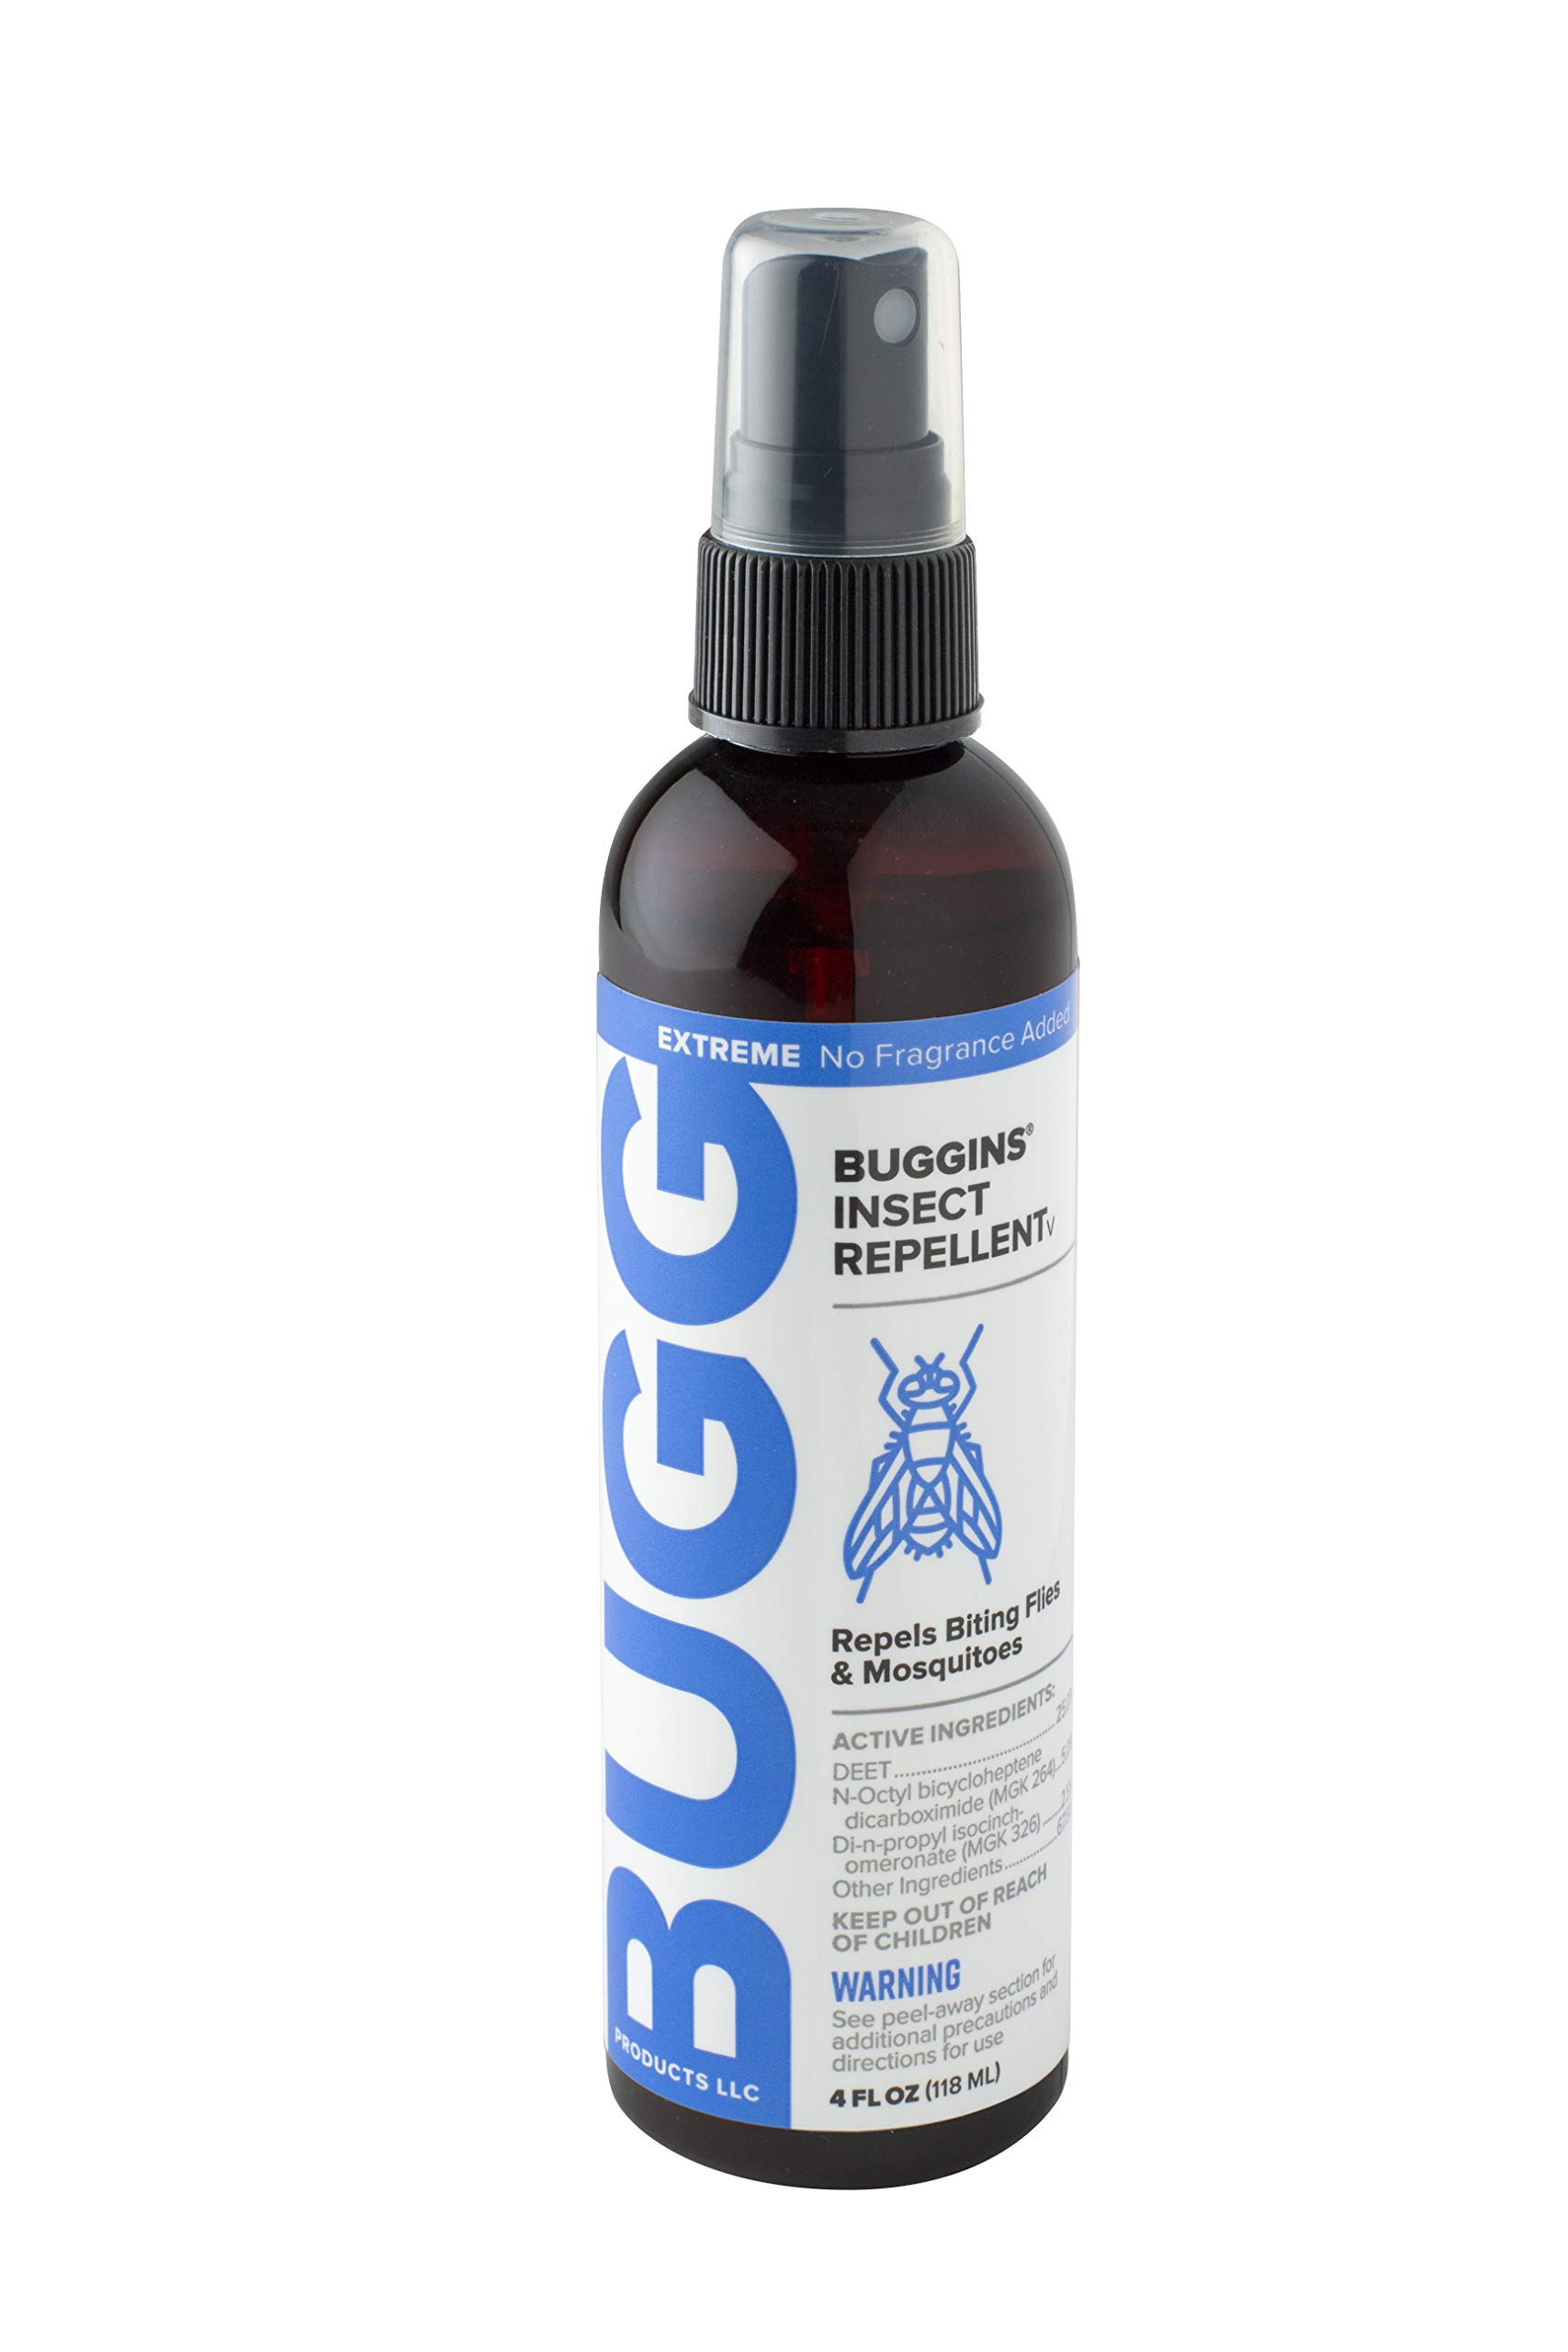 BUGGINS V Extreme Insect Repellent 25% DEET plus 2x Fly repellents NO FRAGRANCE ADDED